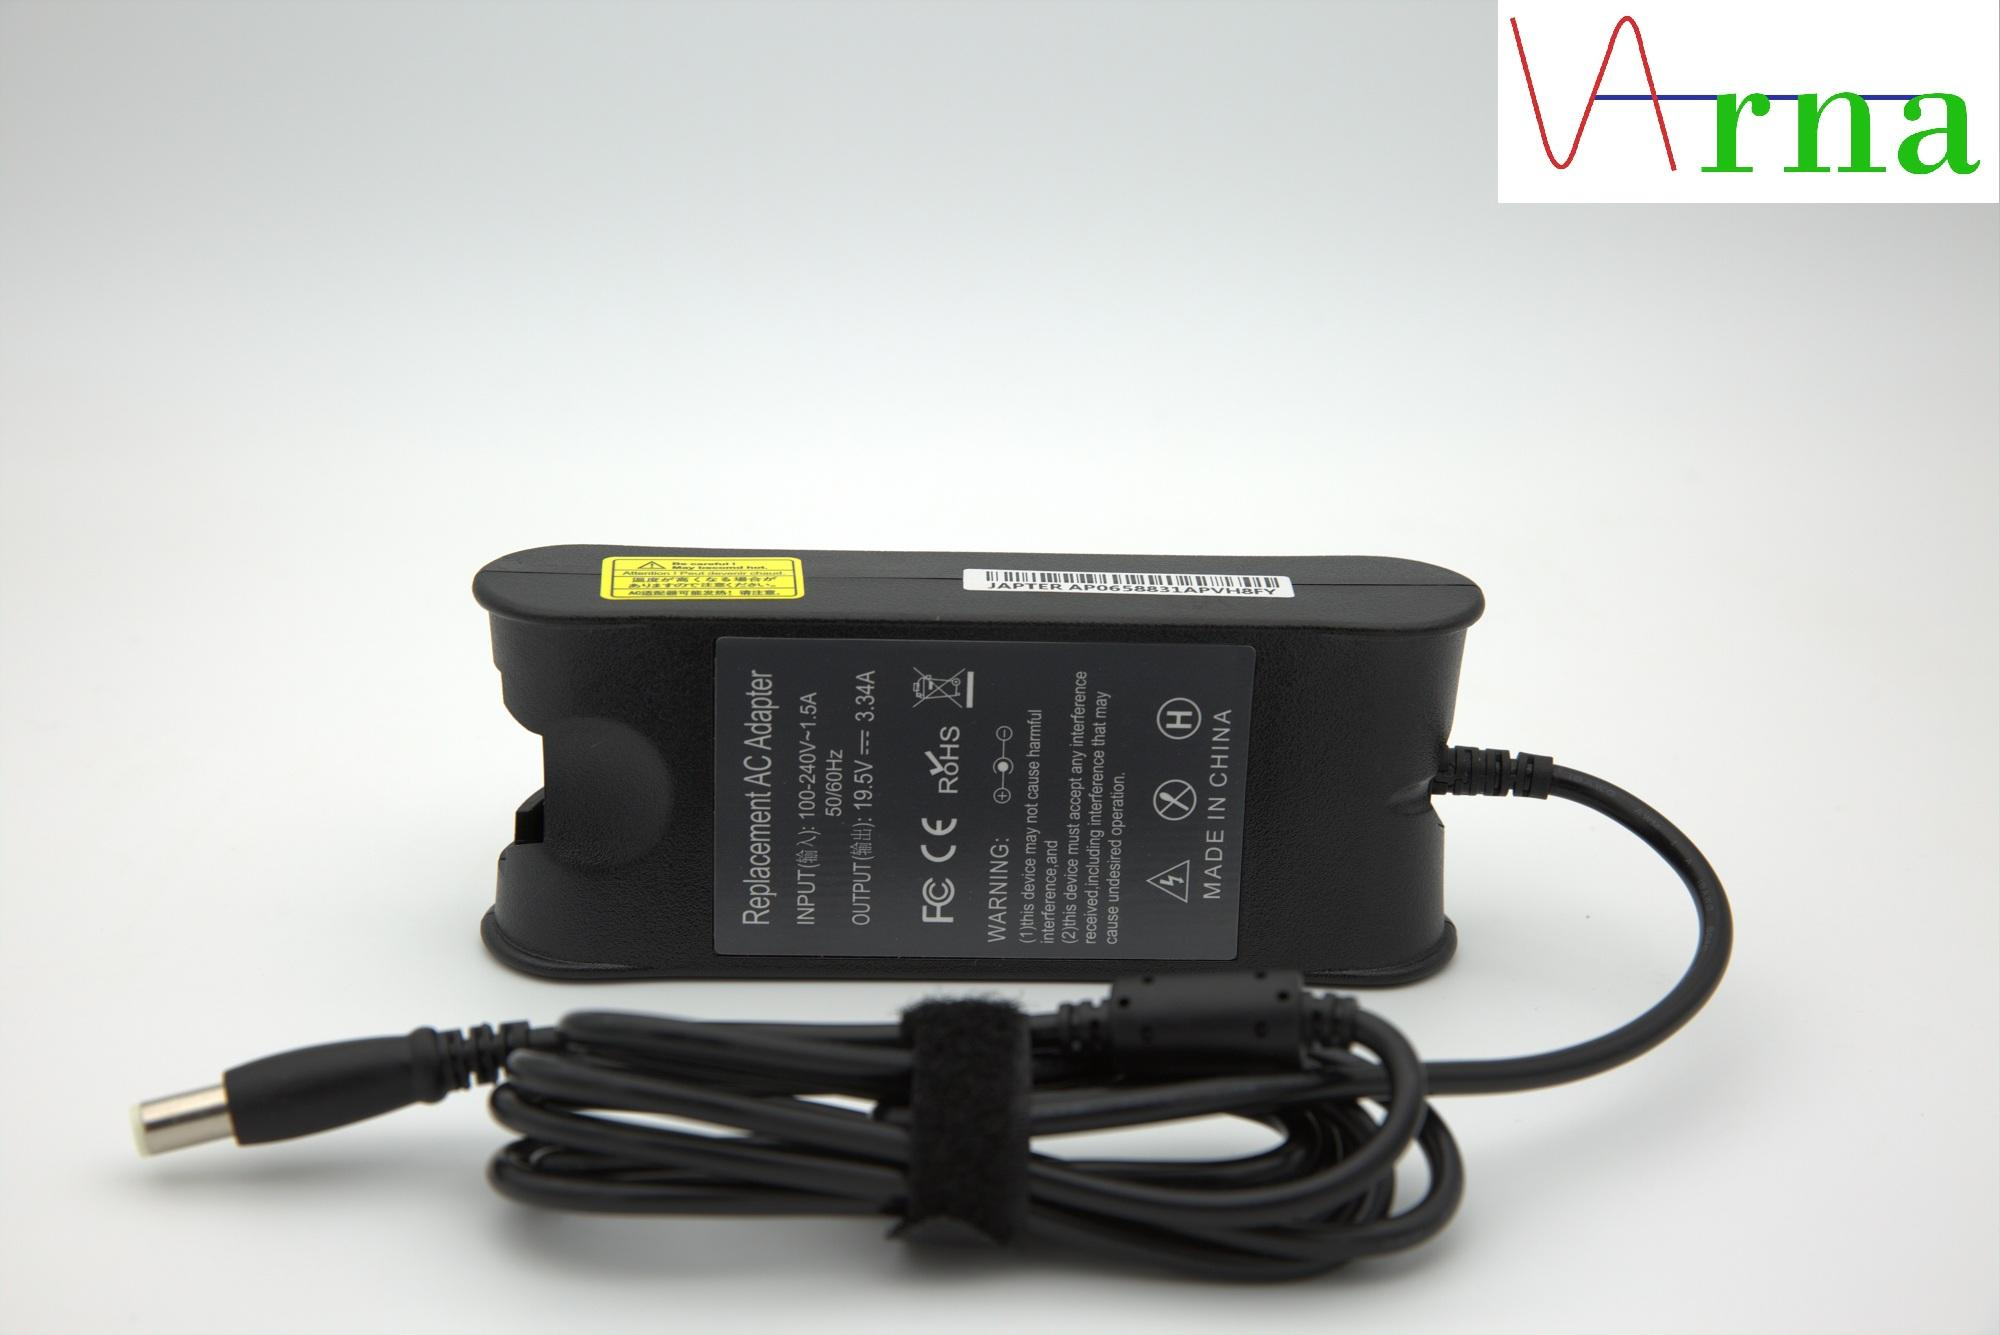 Dell 19.5v 3.34a 65w (7.4*5.0mm) Laptop Charger for Dell Inspiron 11 11Z-1121 1320 13Z-5323 14-3420 1440 14R-5421 14Z-5423 15-3520 15-3521 15-7537 15R-5520 15R-5537 17 17-3721 5425 M4110 M421R;Dell studio 1535; Dell Precision M20, M60, M65, M70, M140